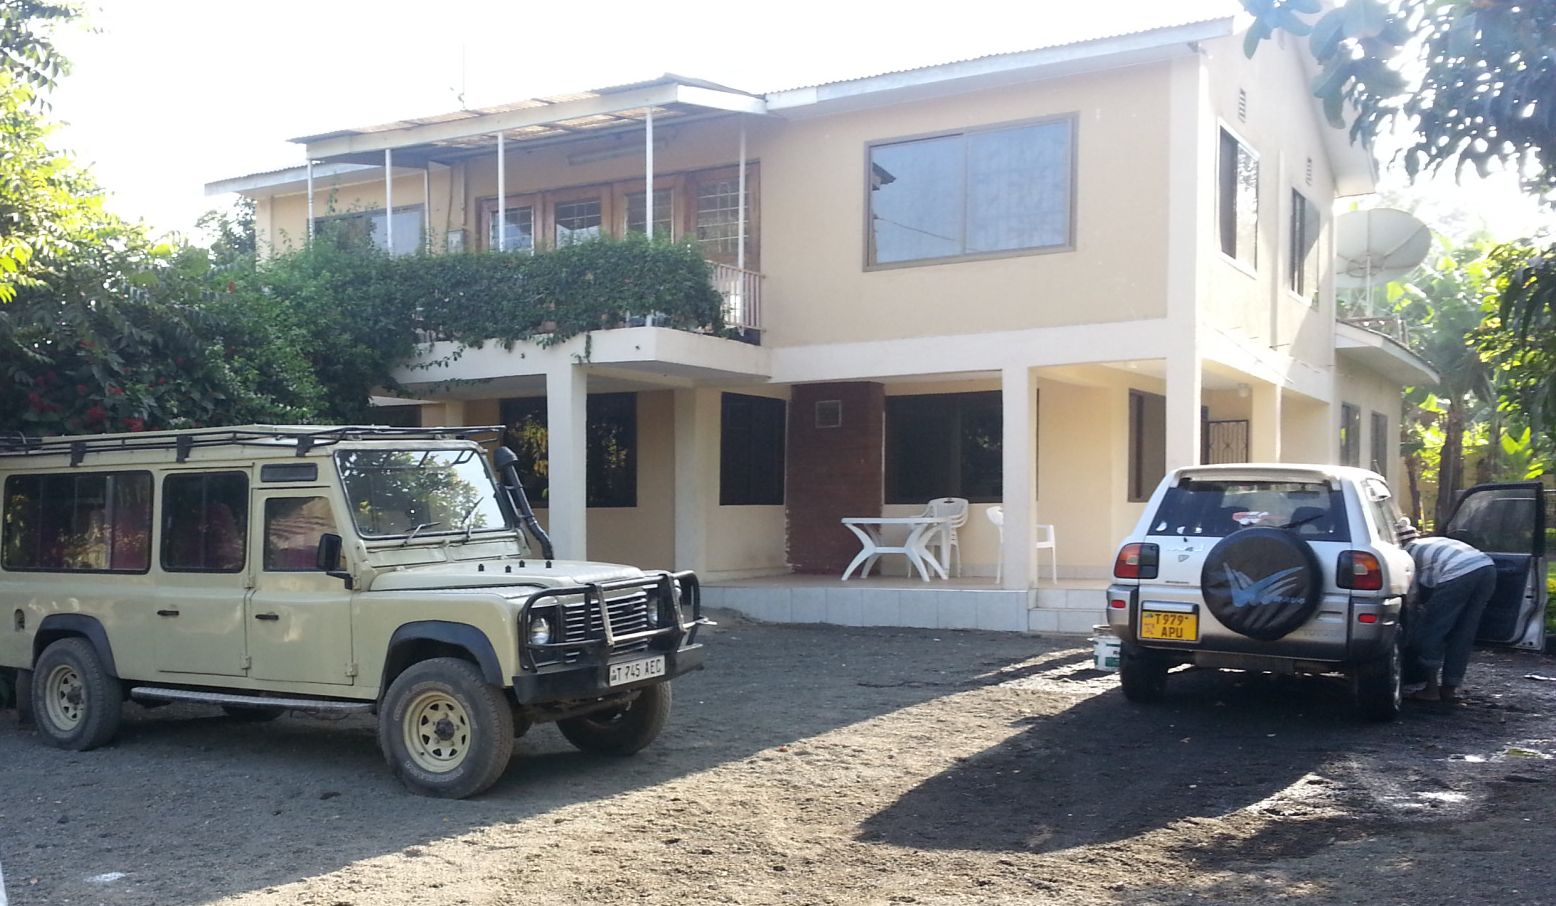 Baobab Volunteer Hostel